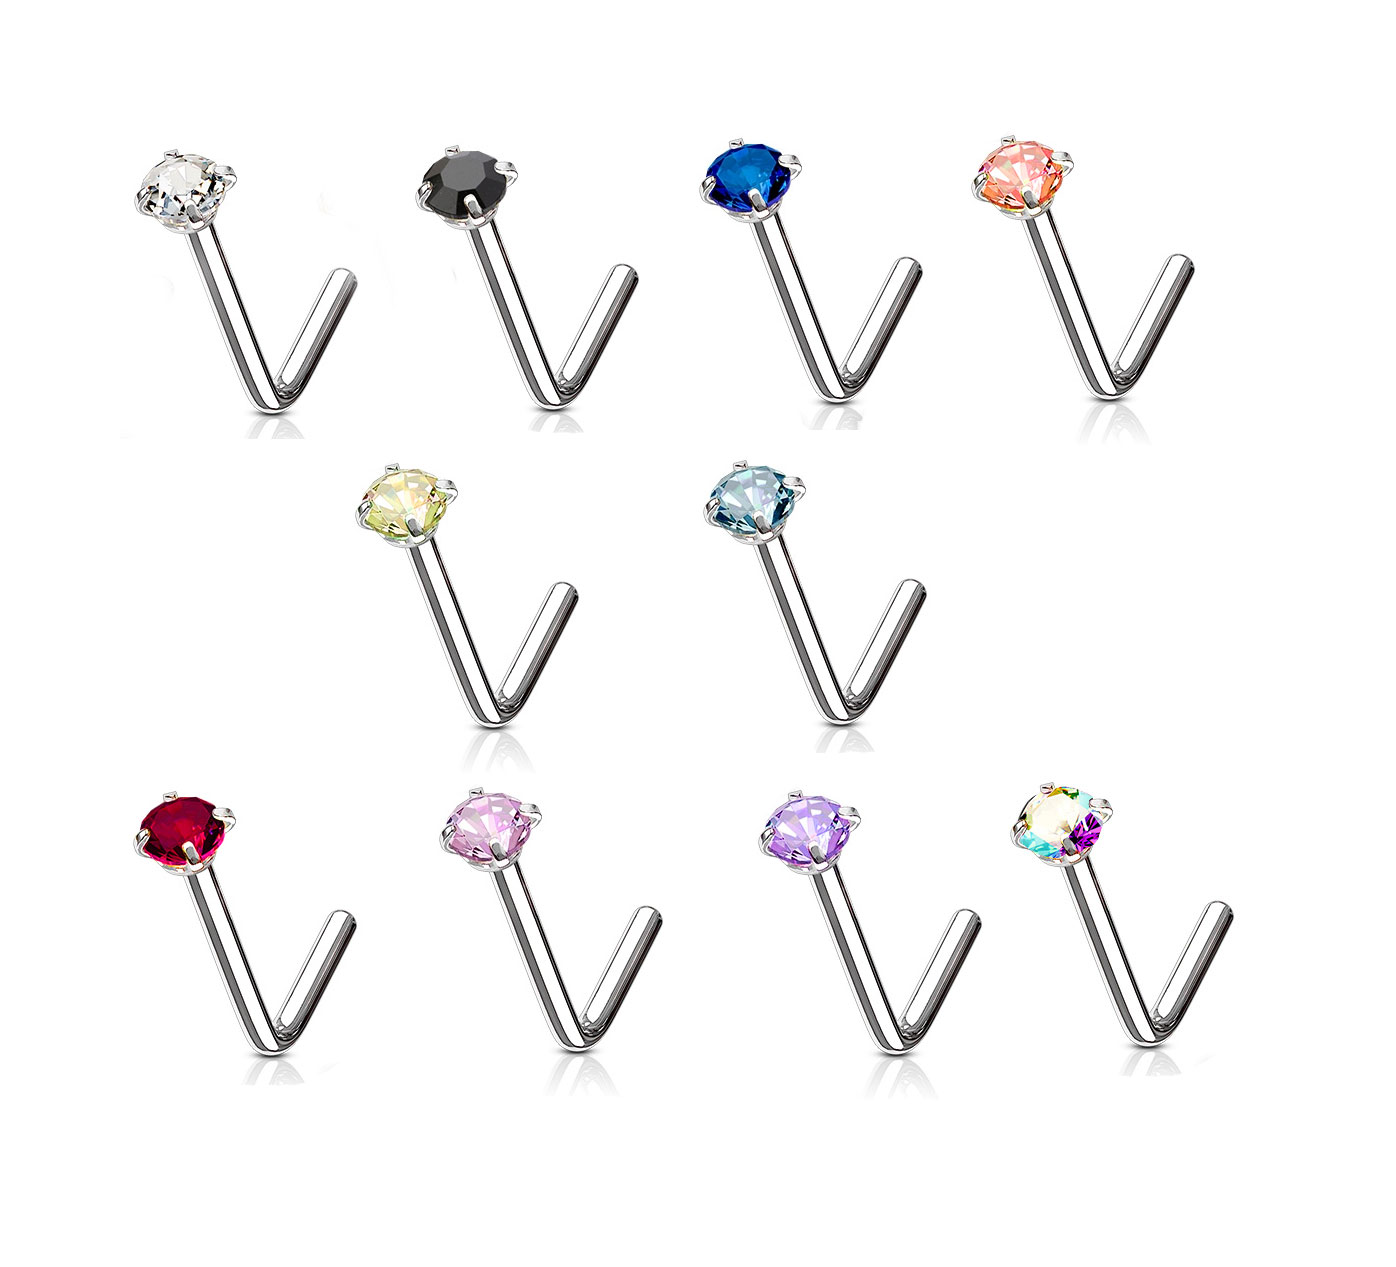 20g 2mm Clear Cz Gem Prong Set L Bend Surgical Steel Nose Ring Stud Piercing Pin Factumevent Com